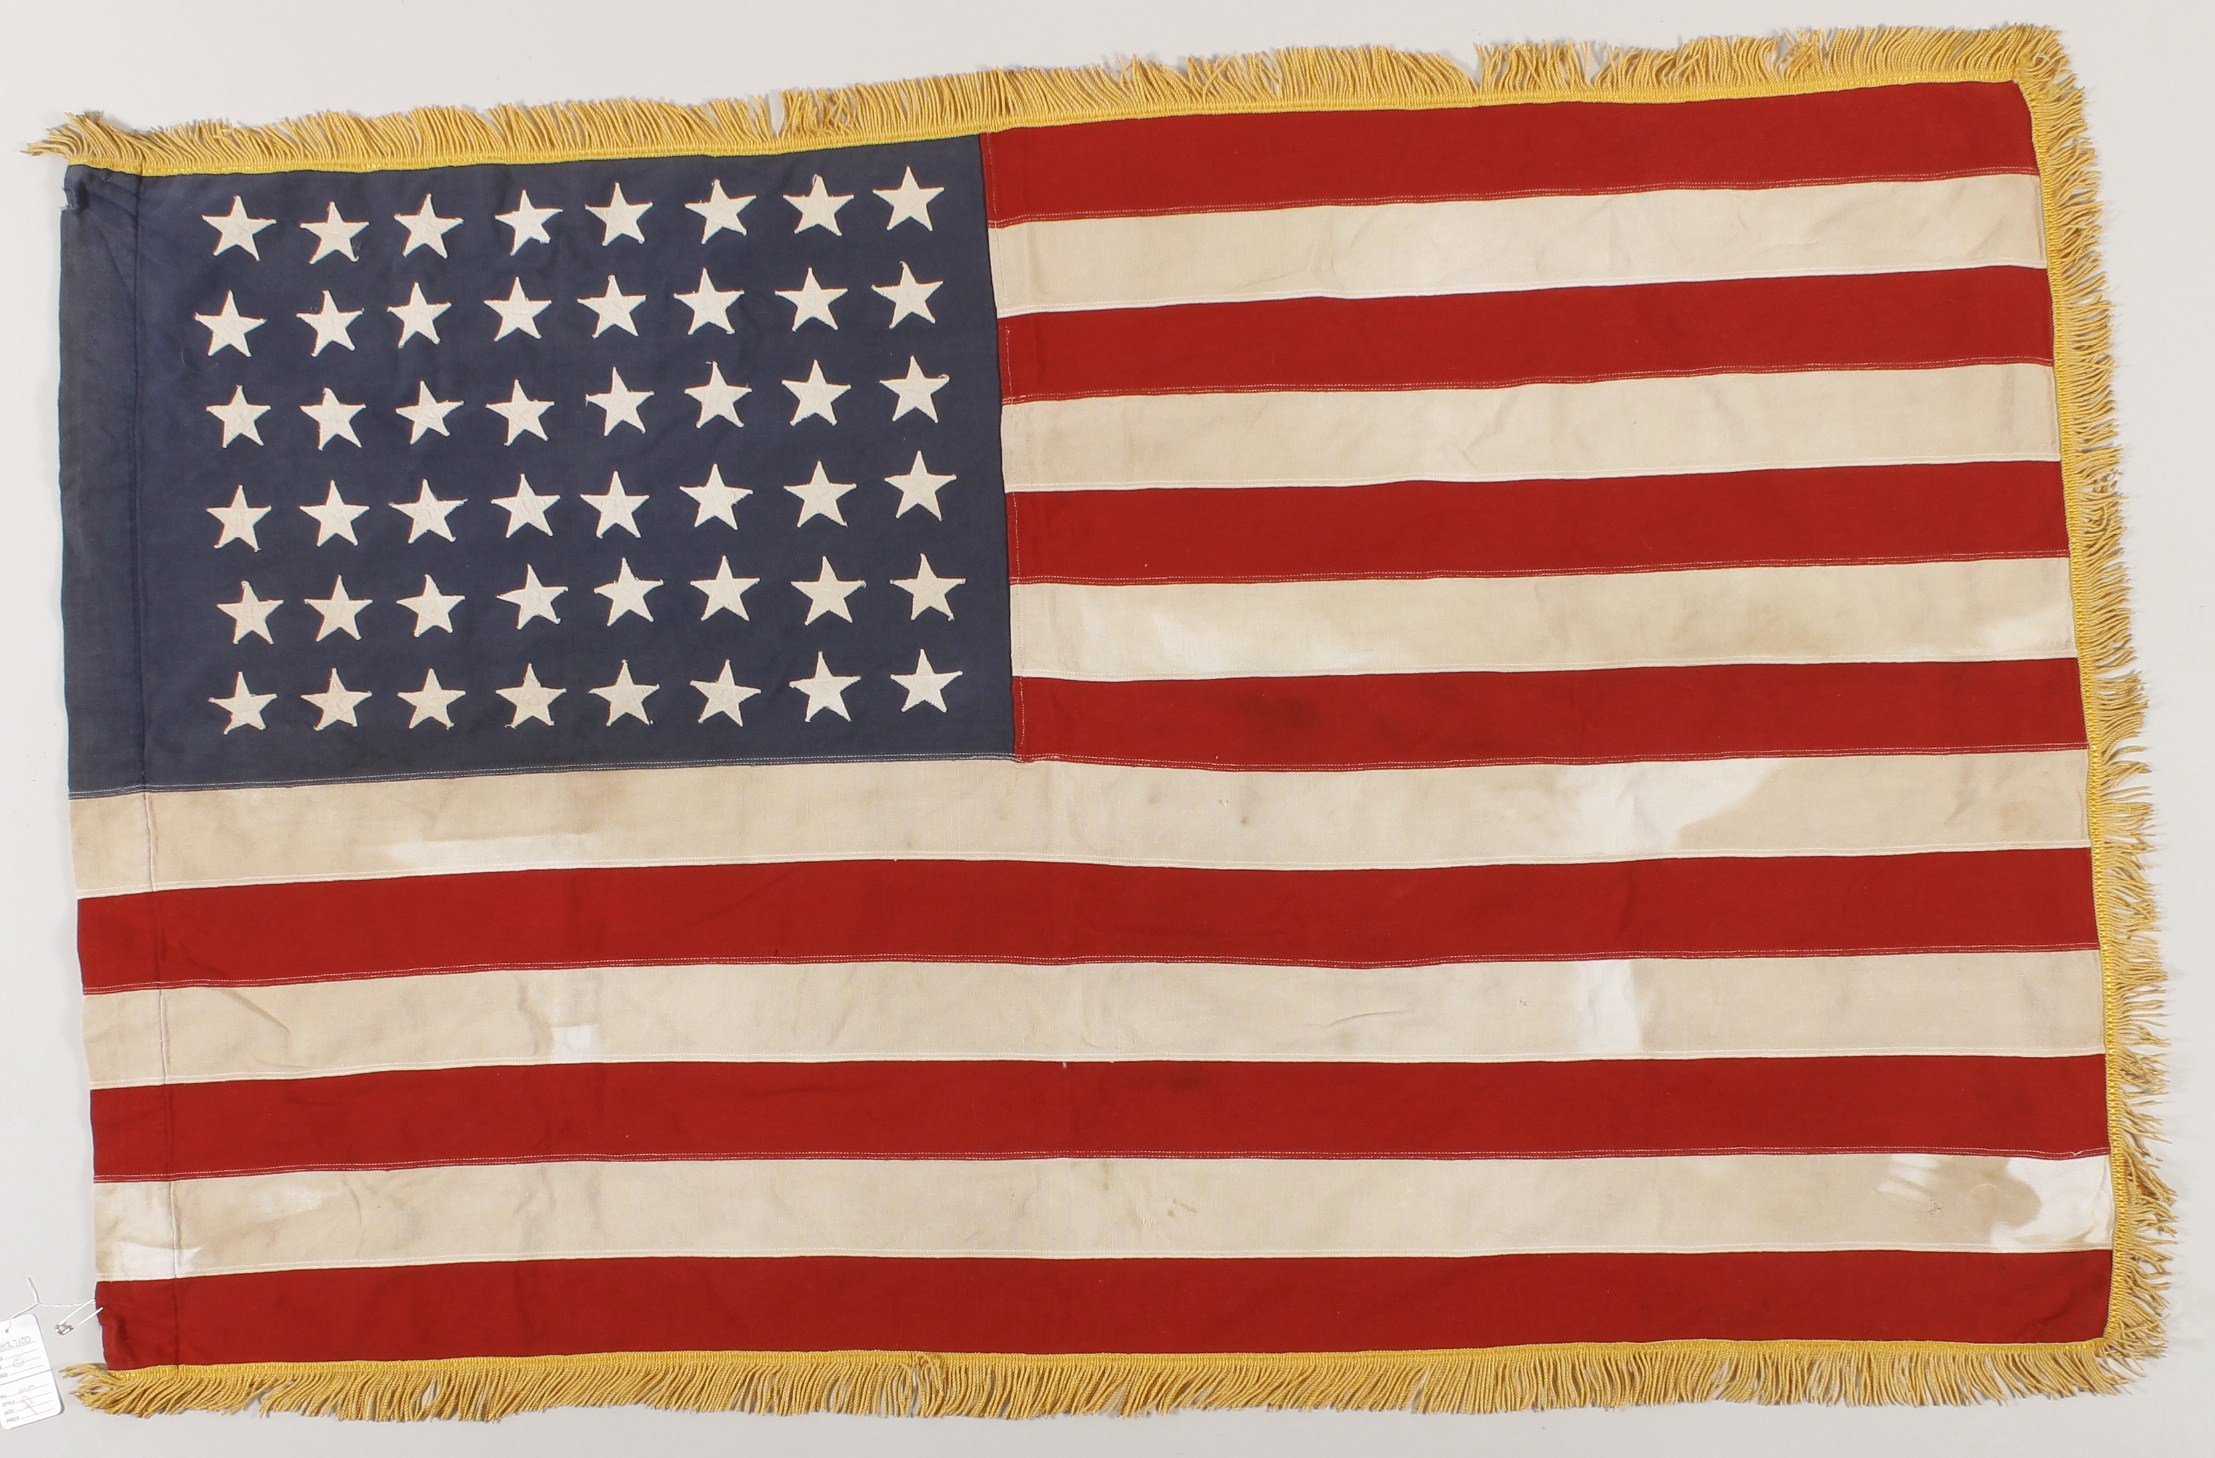 45-Star American Flag, 1896-1909, Stenciled Karl Staab US NAVY